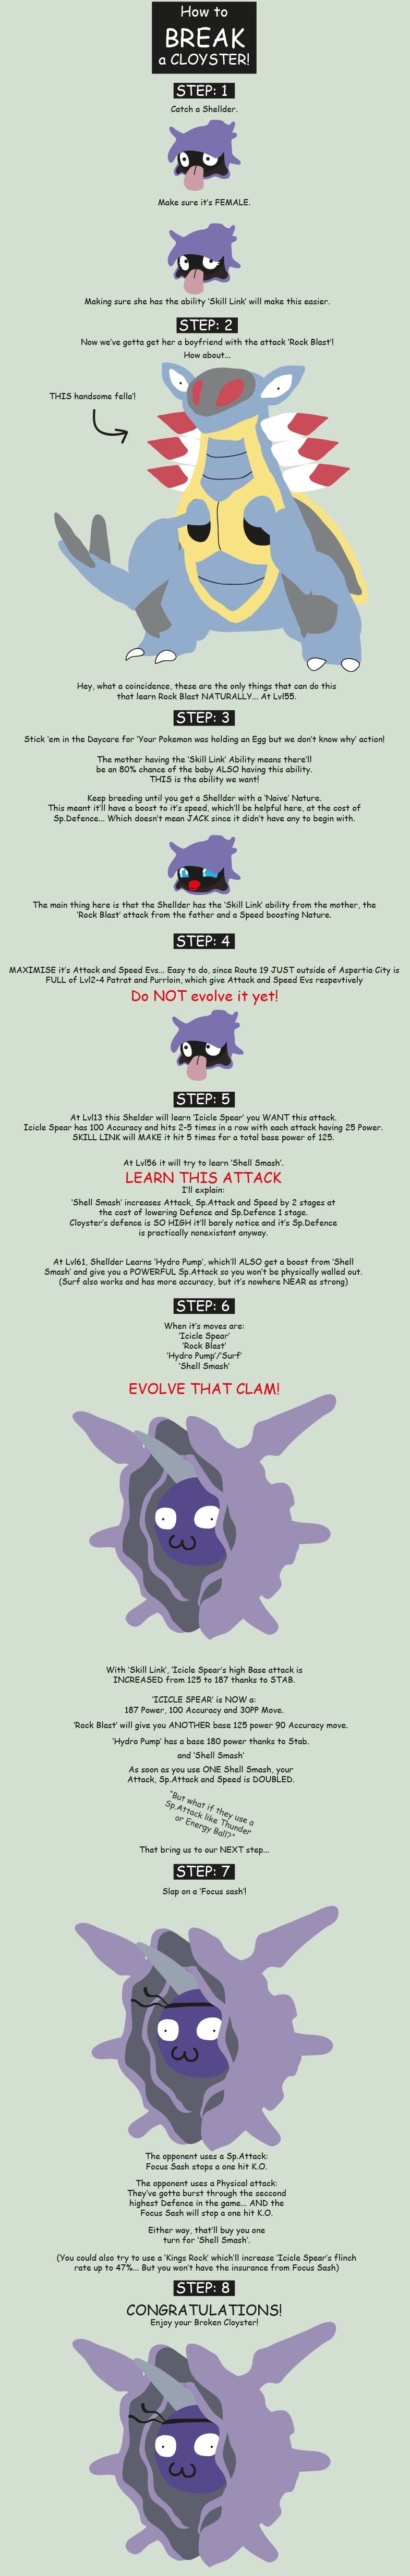 how to break a cloyster by blackwing2 on deviantart